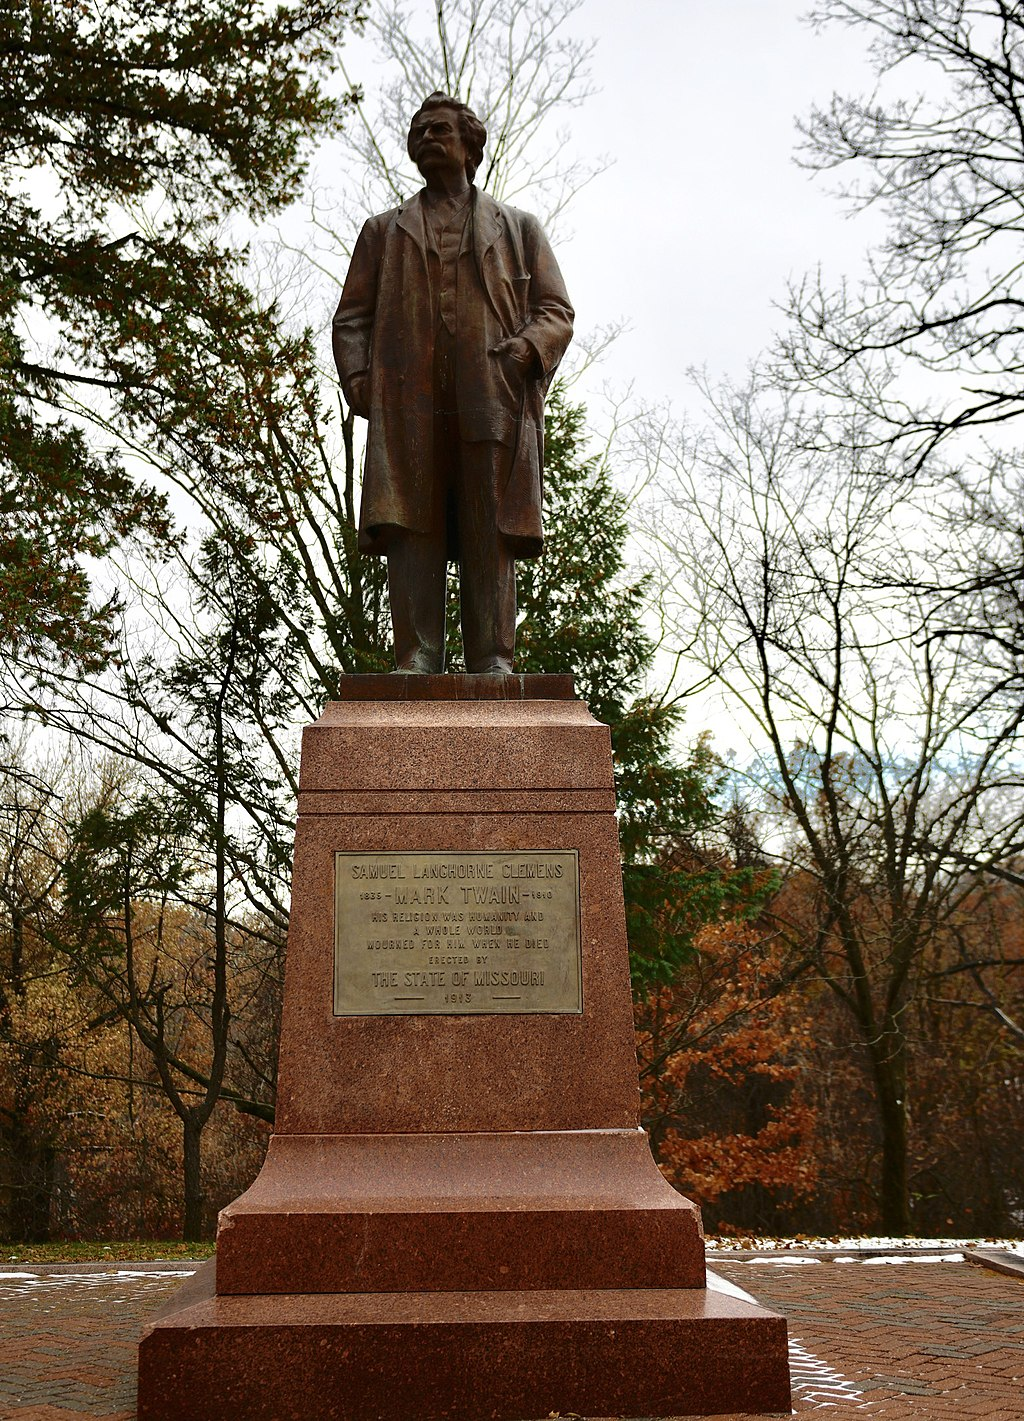 This statue of Mark Twain, Hannibal native and one of the country's greatest writers, was installed in 1913.